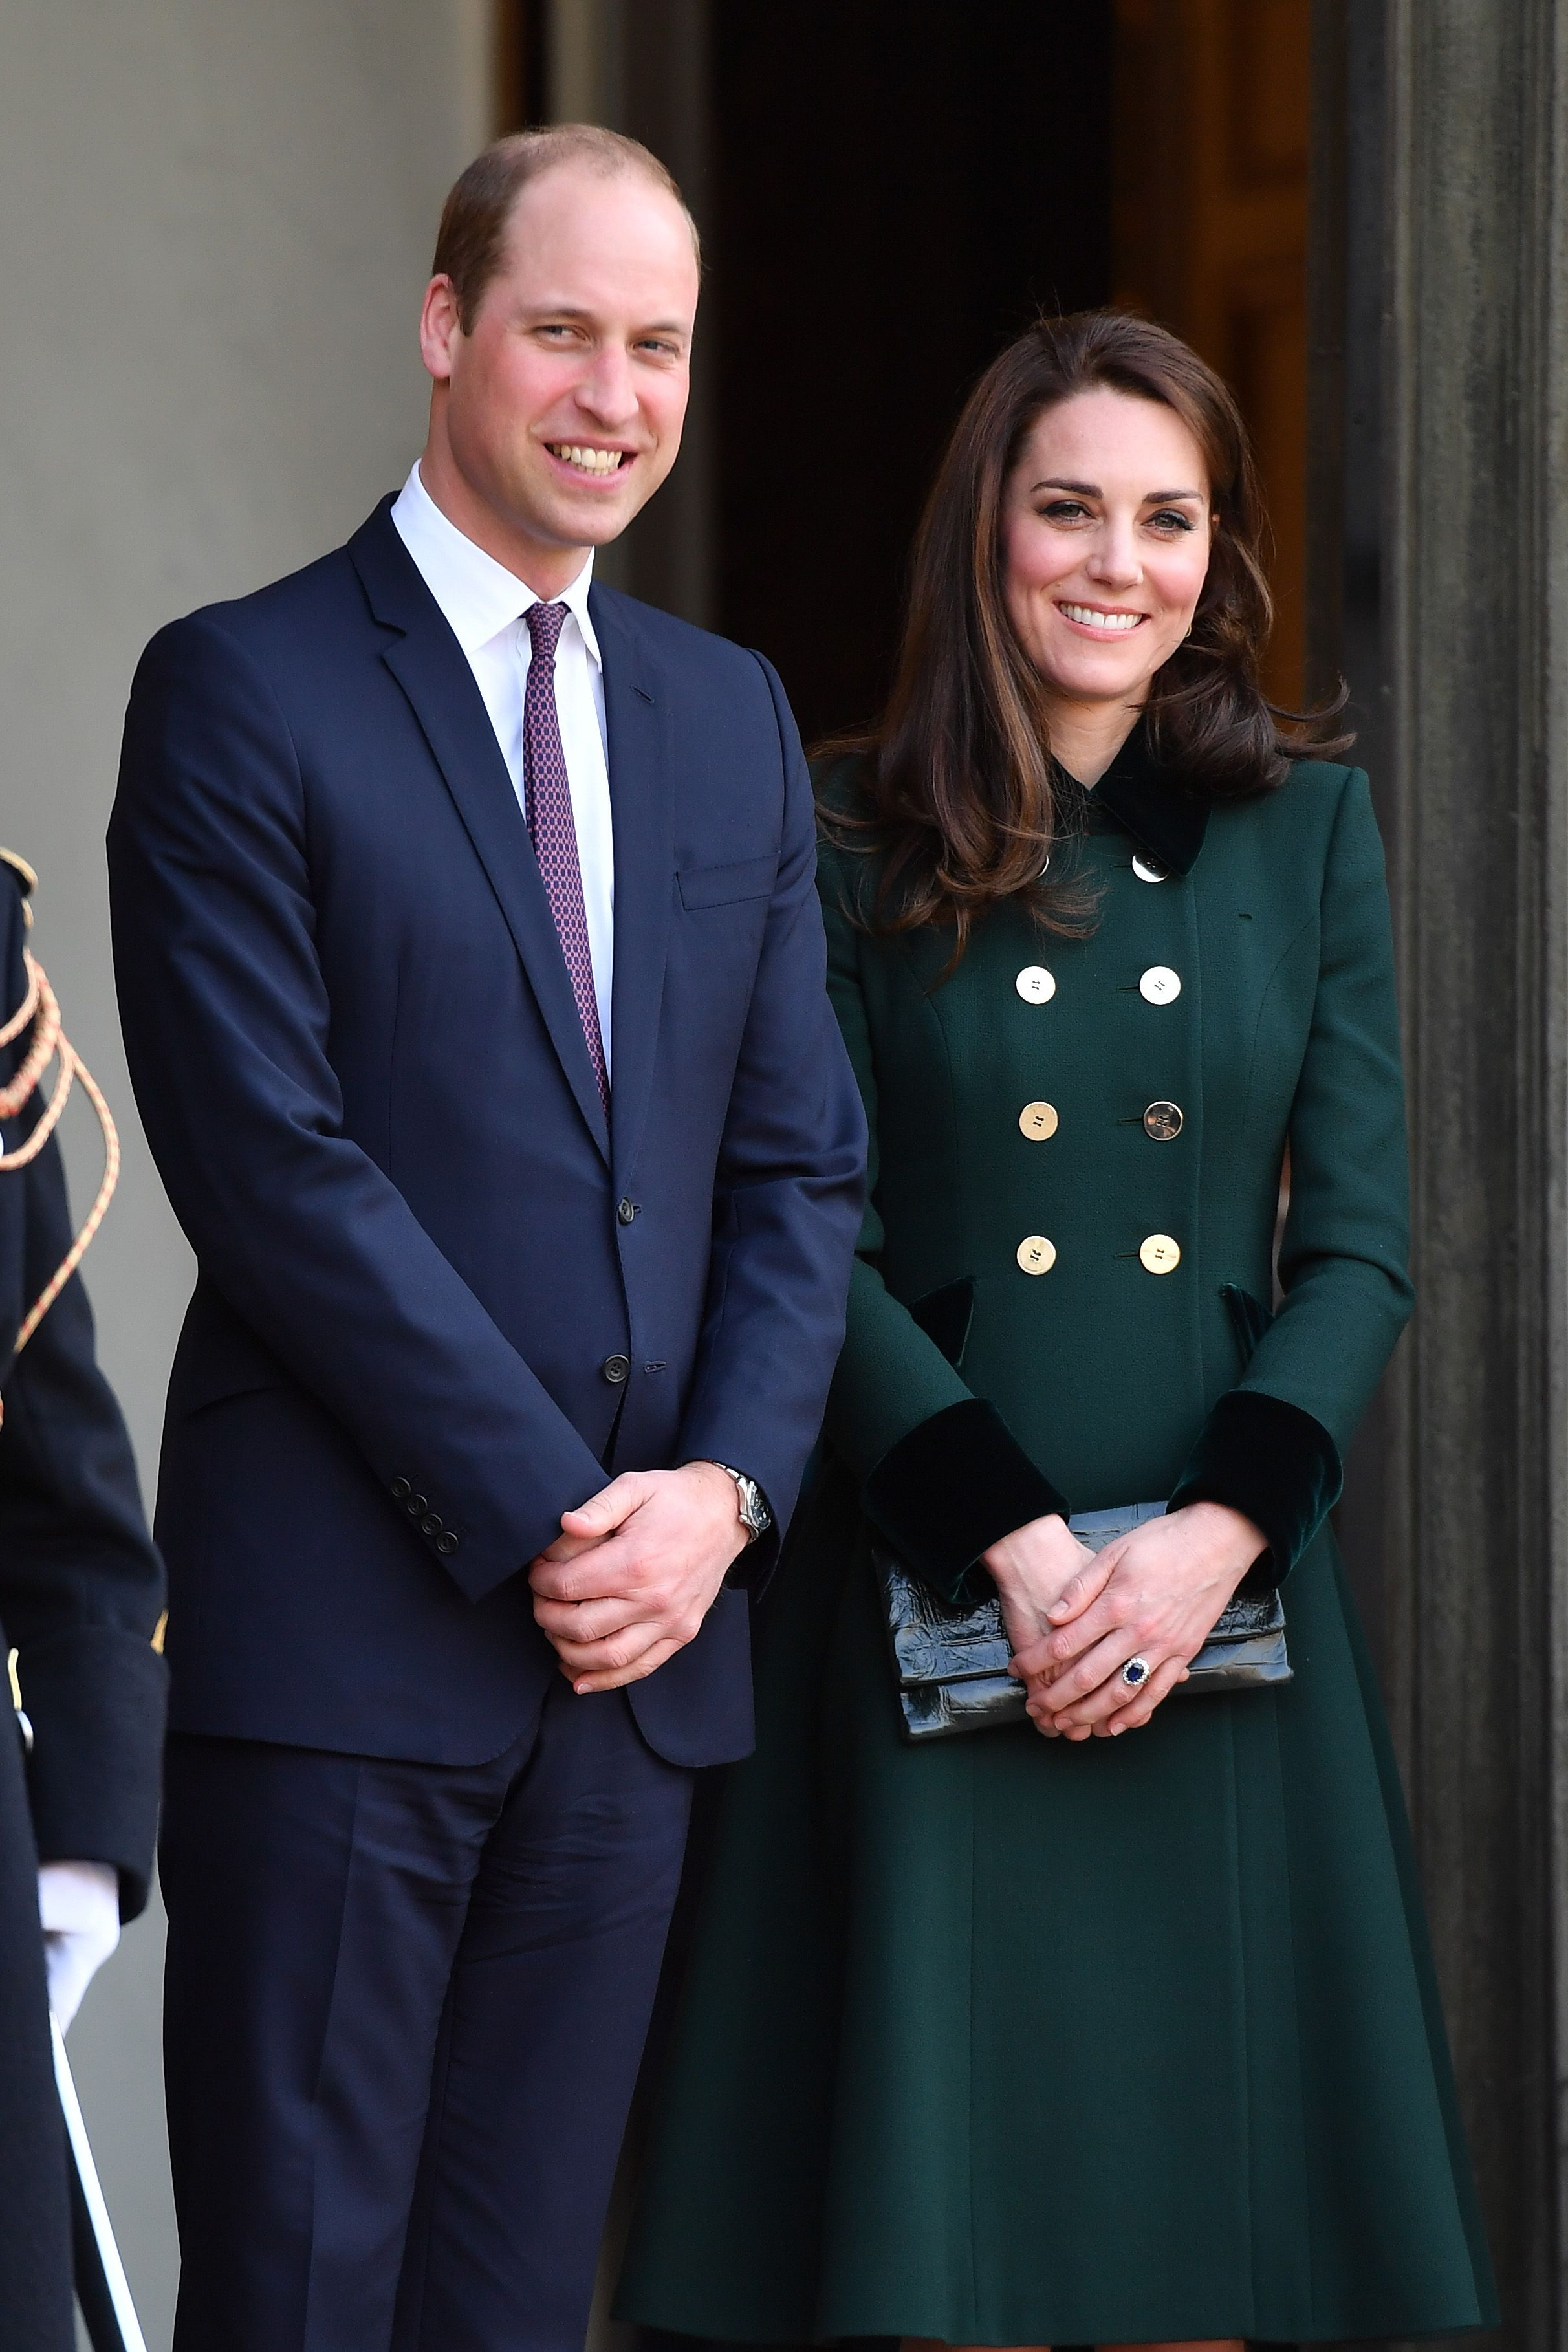 Kate Middleton and Prince William's Relationship Changed